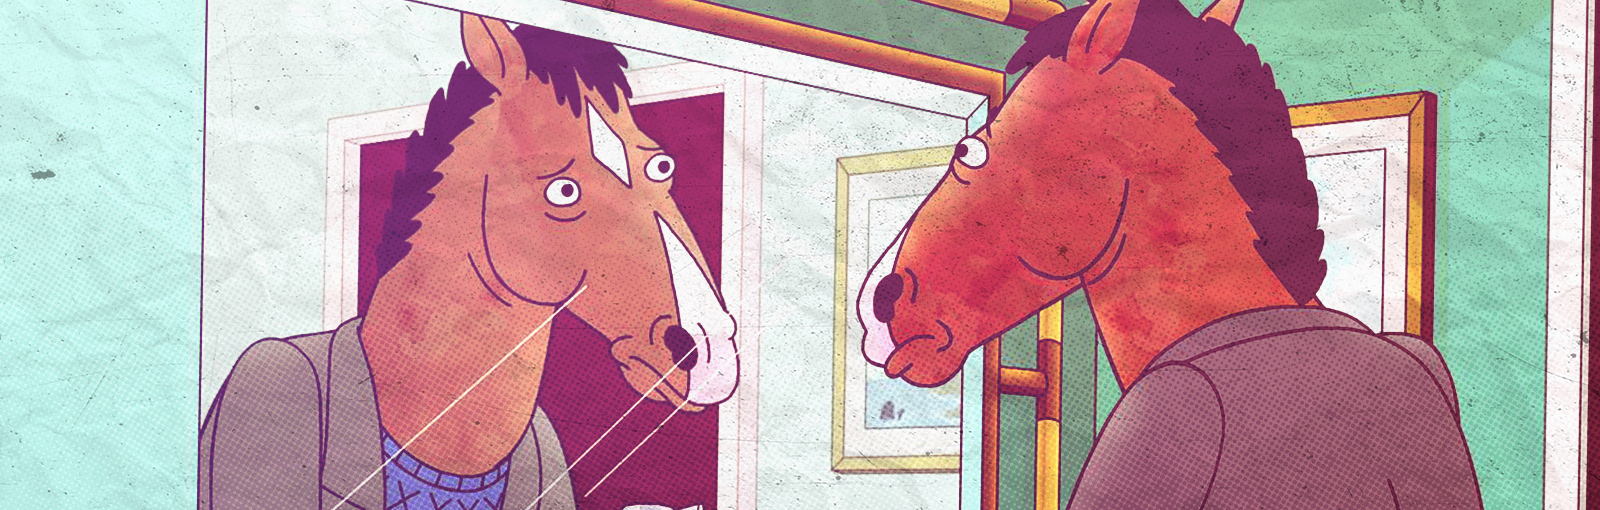 How 'BoJack Horseman' Dismantled The Dramedy And The Pain Of Prestige TV's Difficult Man